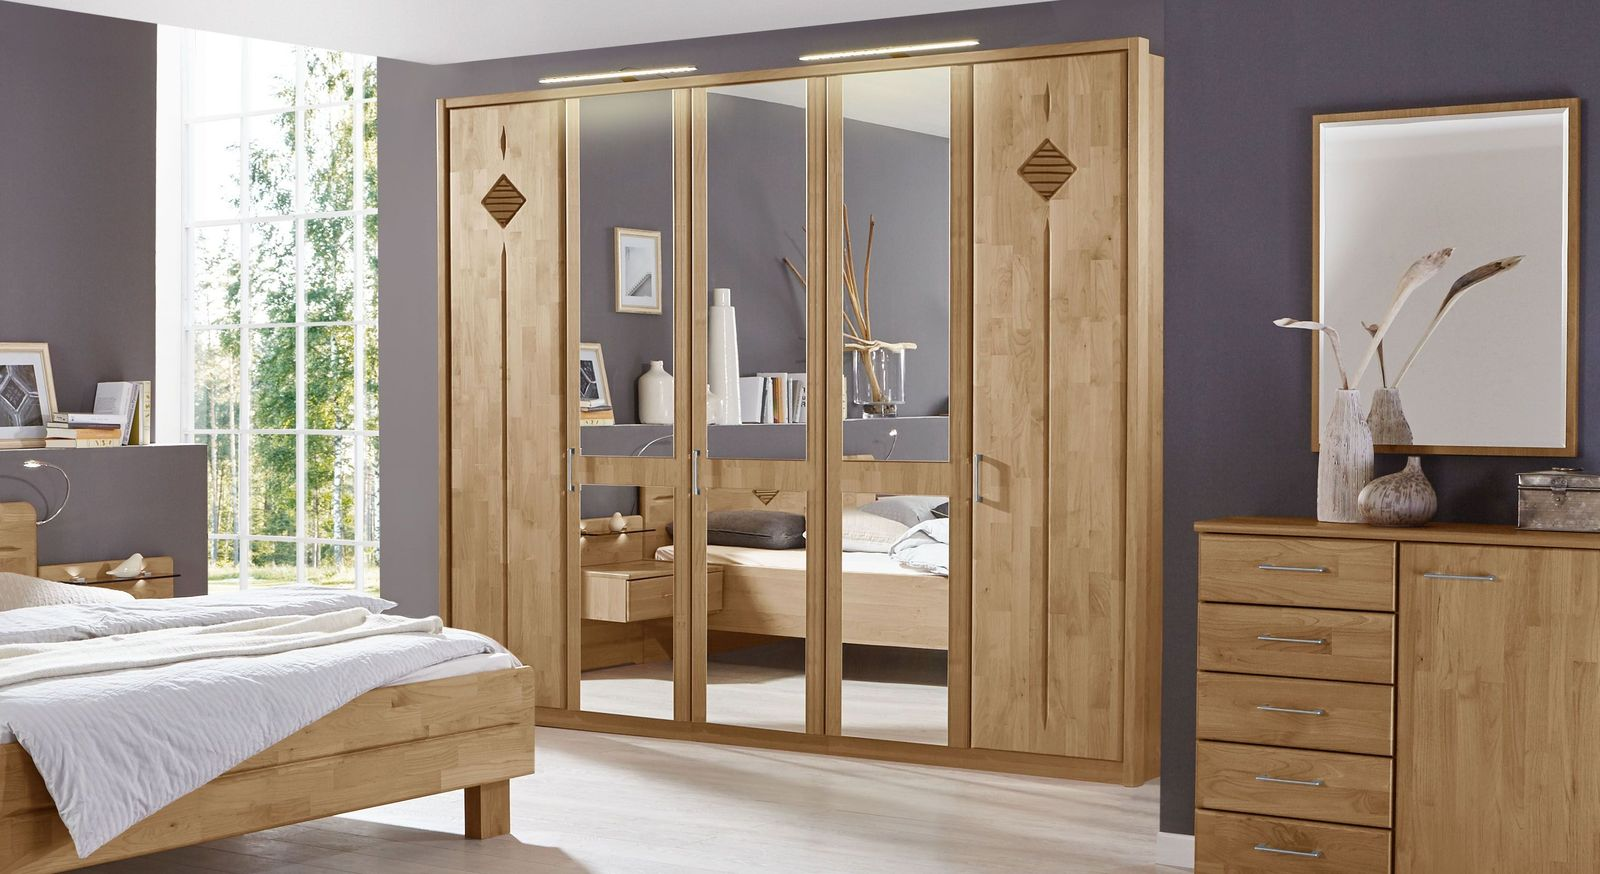 spiegel kleiderschrank erle teilmassiv klassischer stil aliano. Black Bedroom Furniture Sets. Home Design Ideas